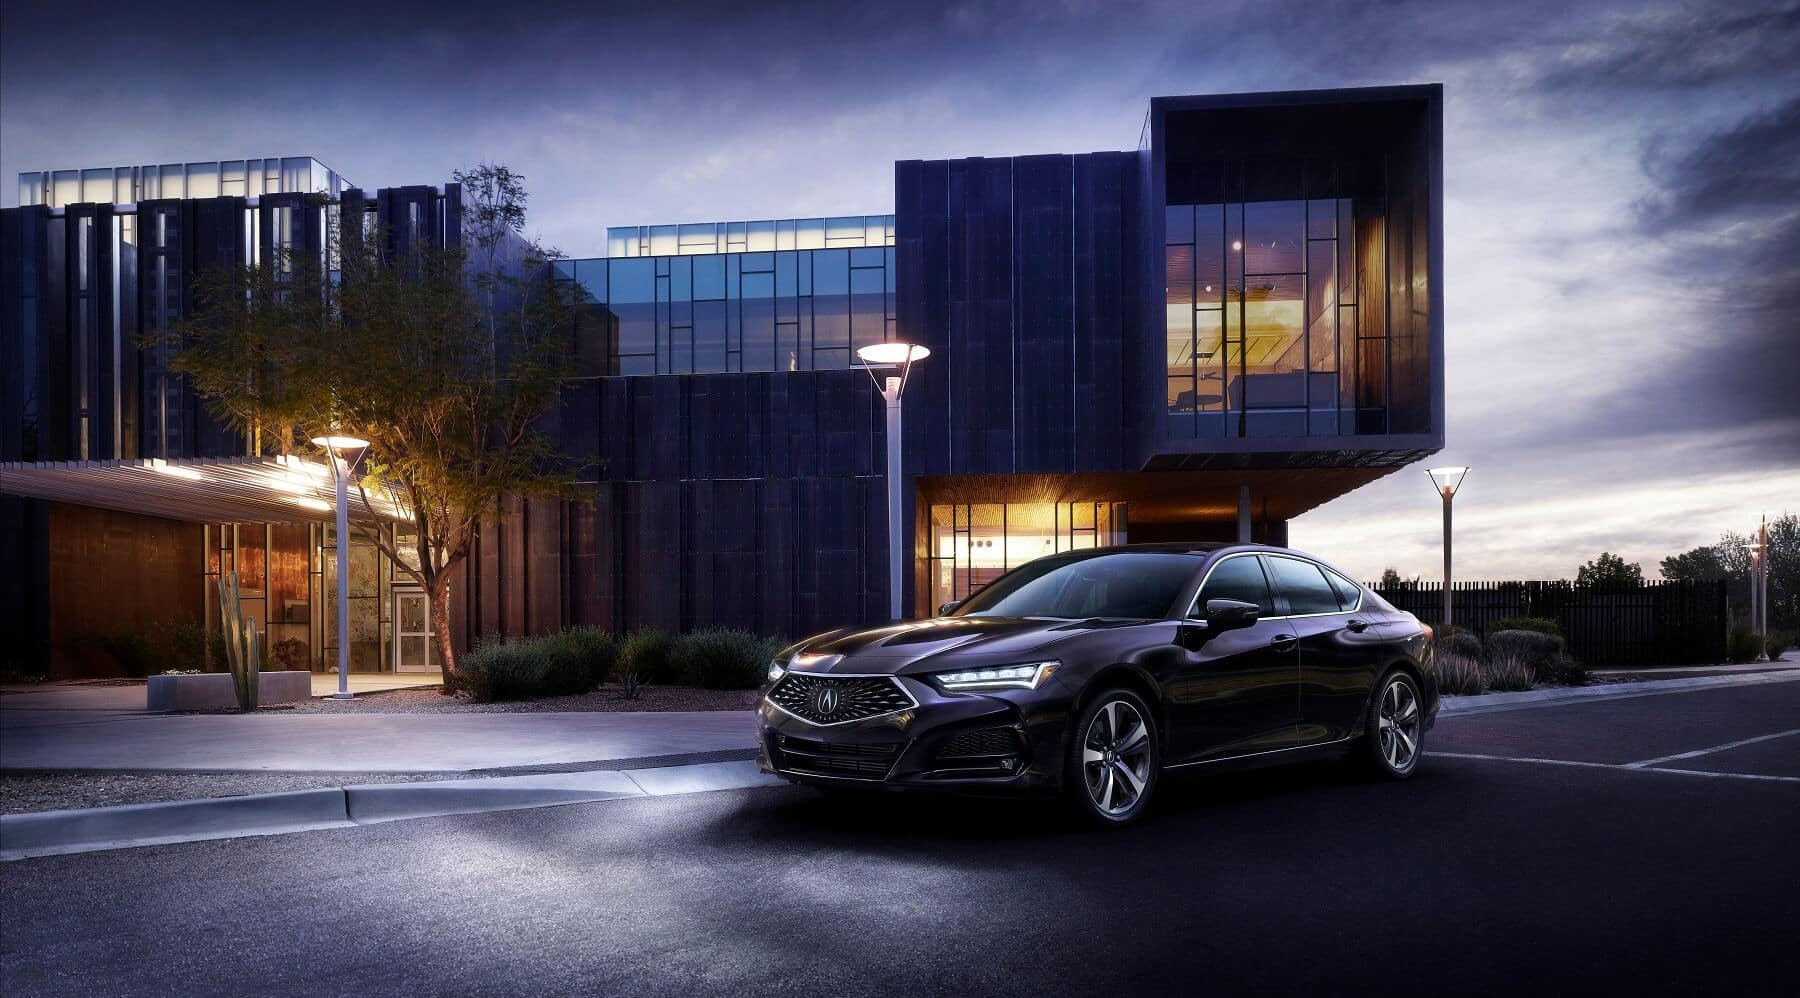 2021 Acura TLX Advance Parked